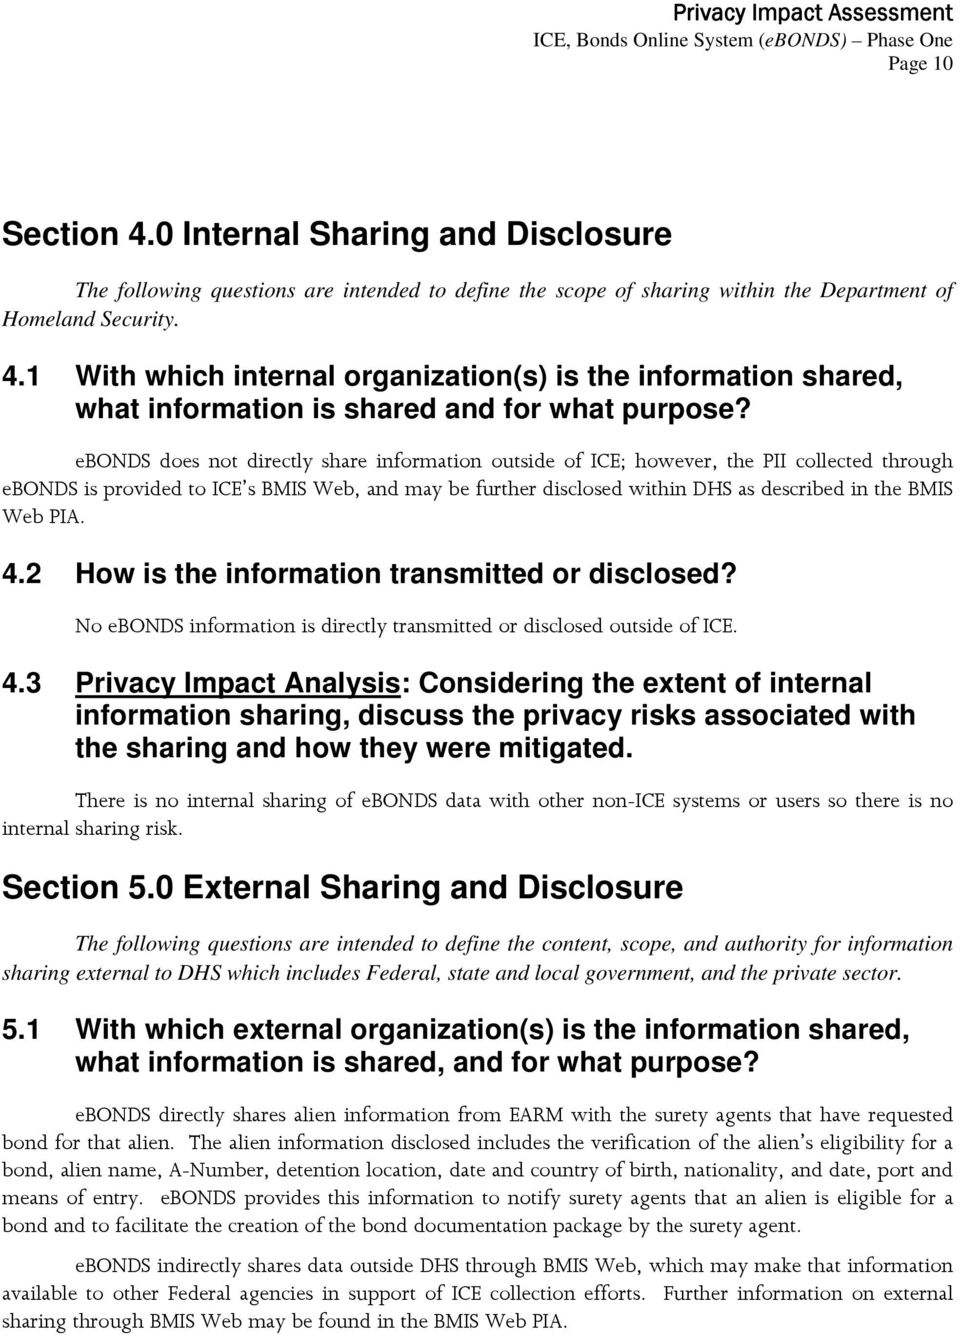 Web PIA. 4.2 How is the information transmitted or disclosed? No ebonds information is directly transmitted or disclosed outside of ICE. 4.3 Privacy Impact Analysis: Considering the extent of internal information sharing, discuss the privacy risks associated with the sharing and how they were mitigated.